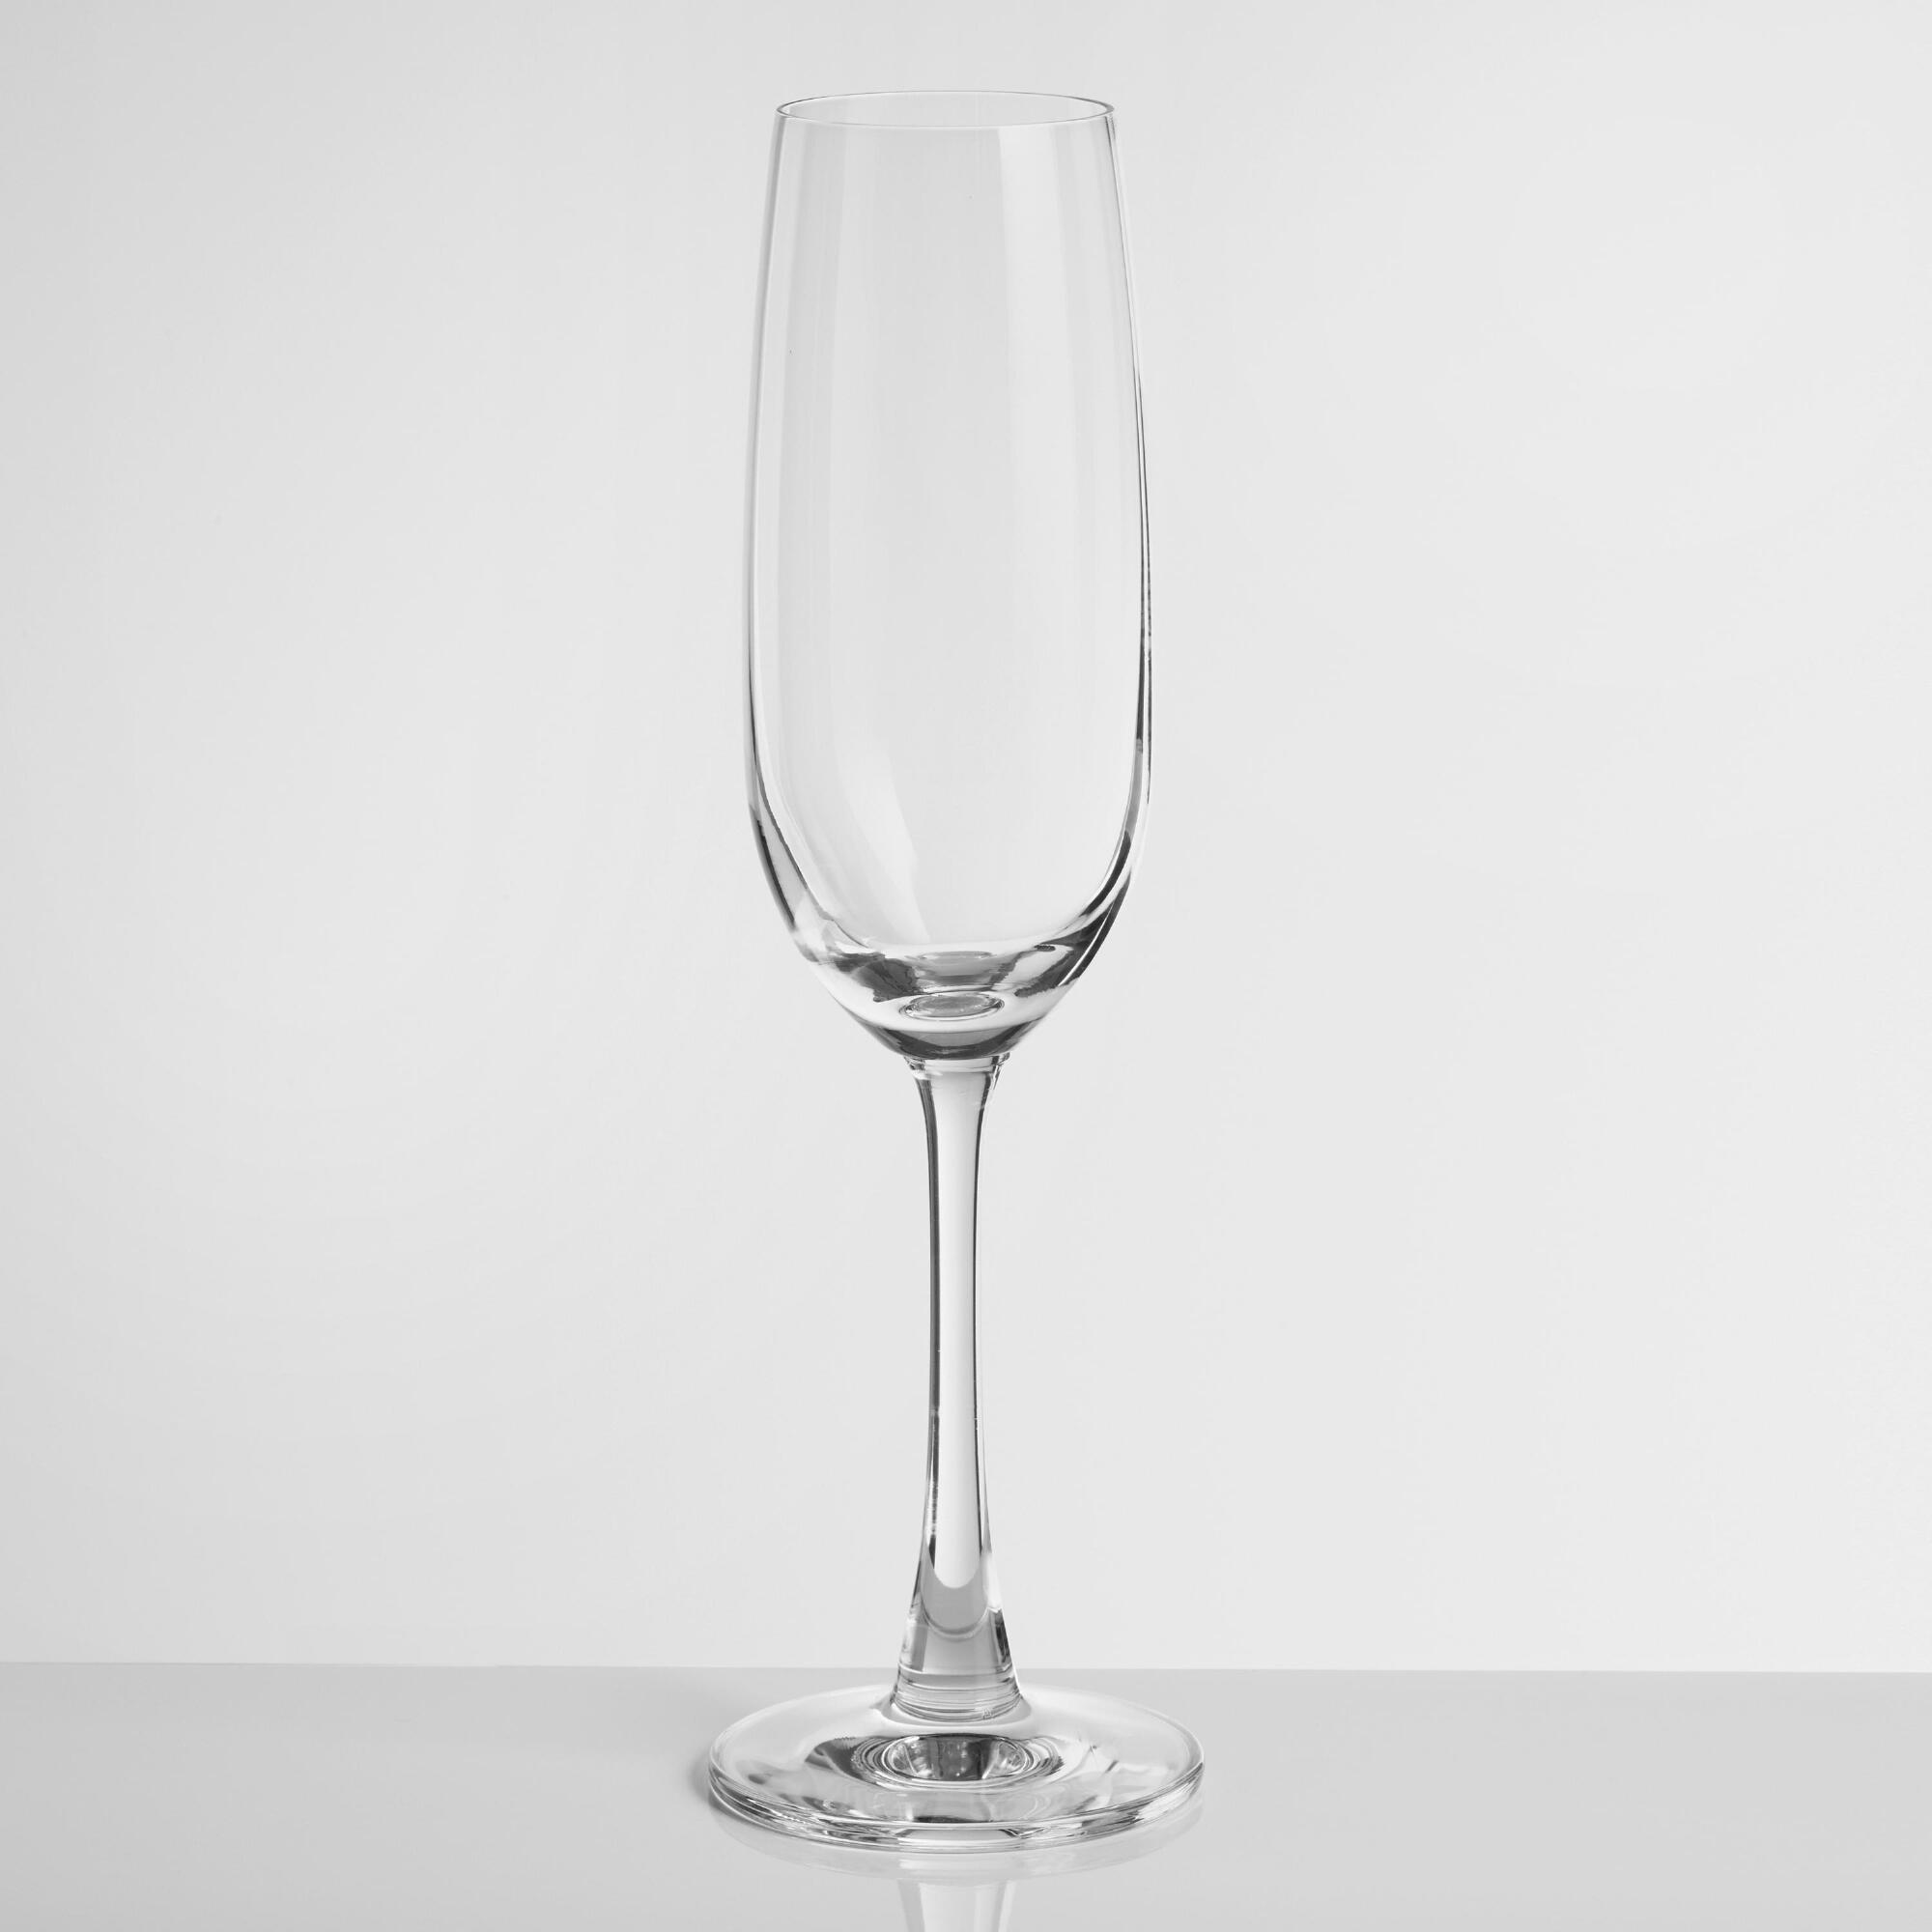 Event Champagne Flutes Set of 4 - Glass by World Market